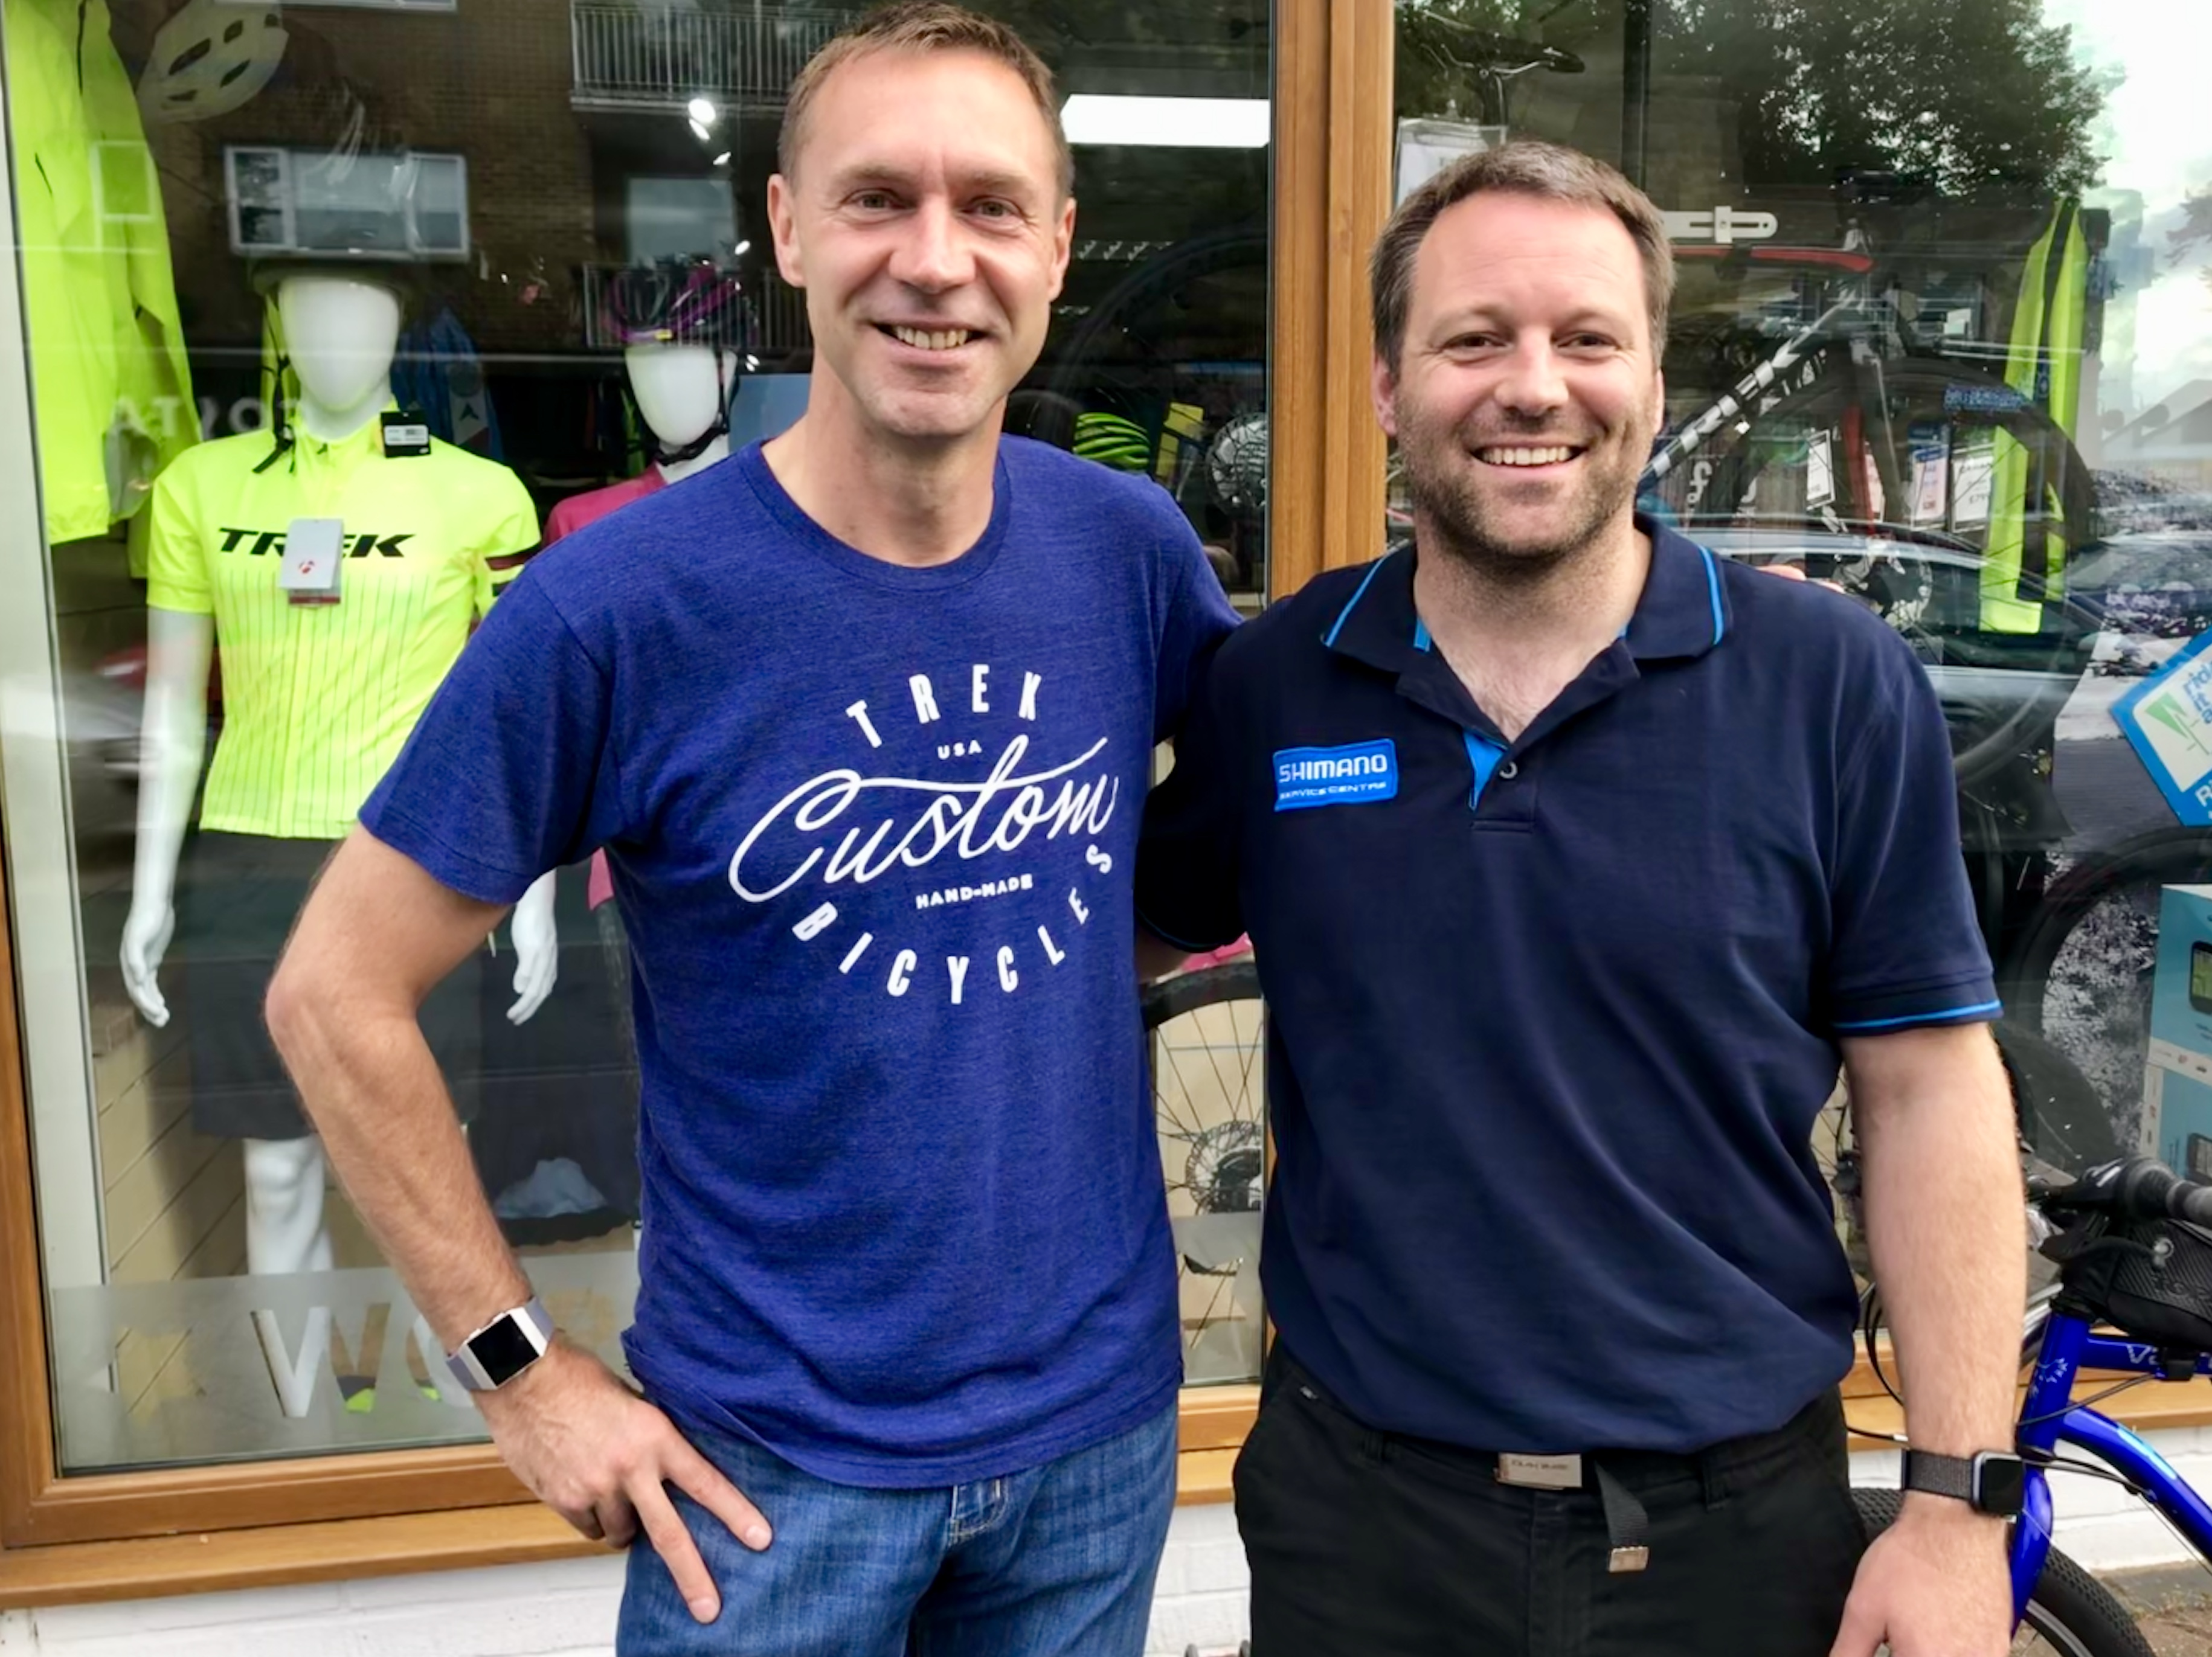 Bournemouth Cycleworks LTD